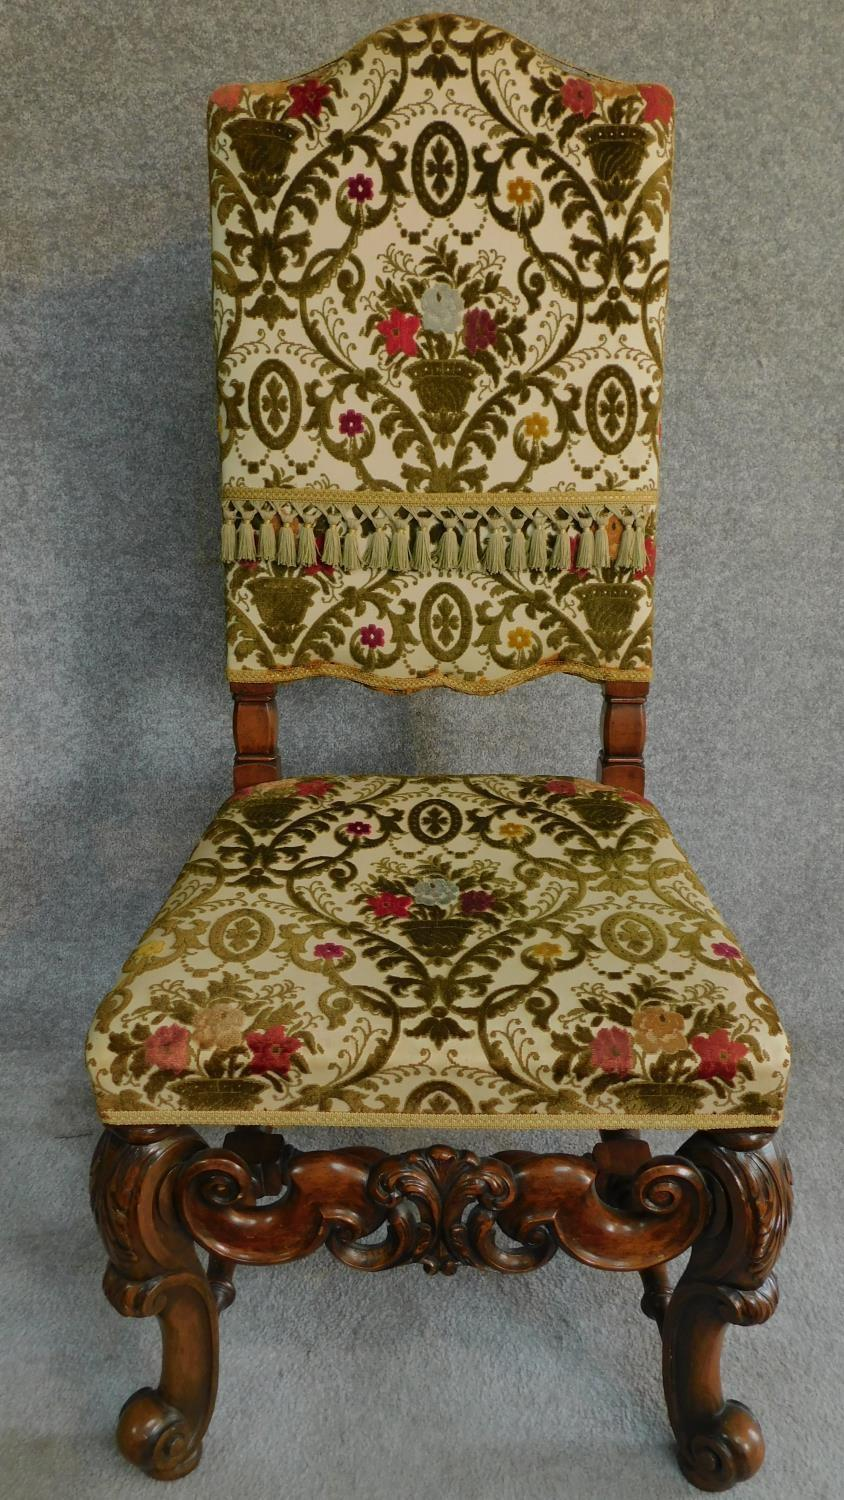 A Victorian carved oak armchair with tapestry style floral upholstery, raised on stretchered - Image 2 of 6